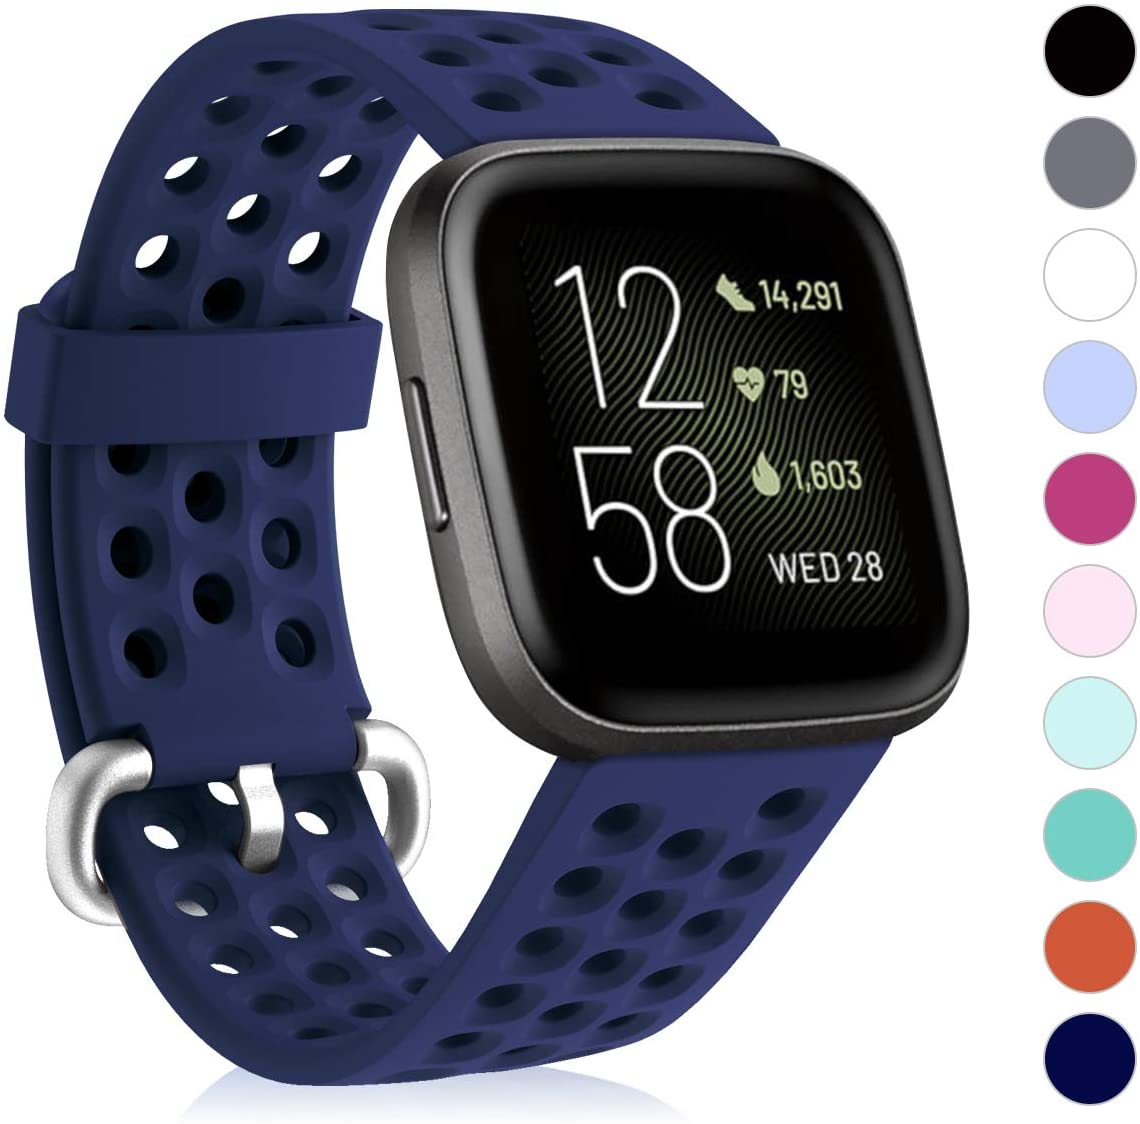 CAVN Sport Bands Compatible with Fitbit Versa 2 / Versa/Versa Lite Bands for Women Men, Soft Waterproof Breathable Silicone Replacement Smart Watch Strap, Navy Blue, S(5.1-7.9in)